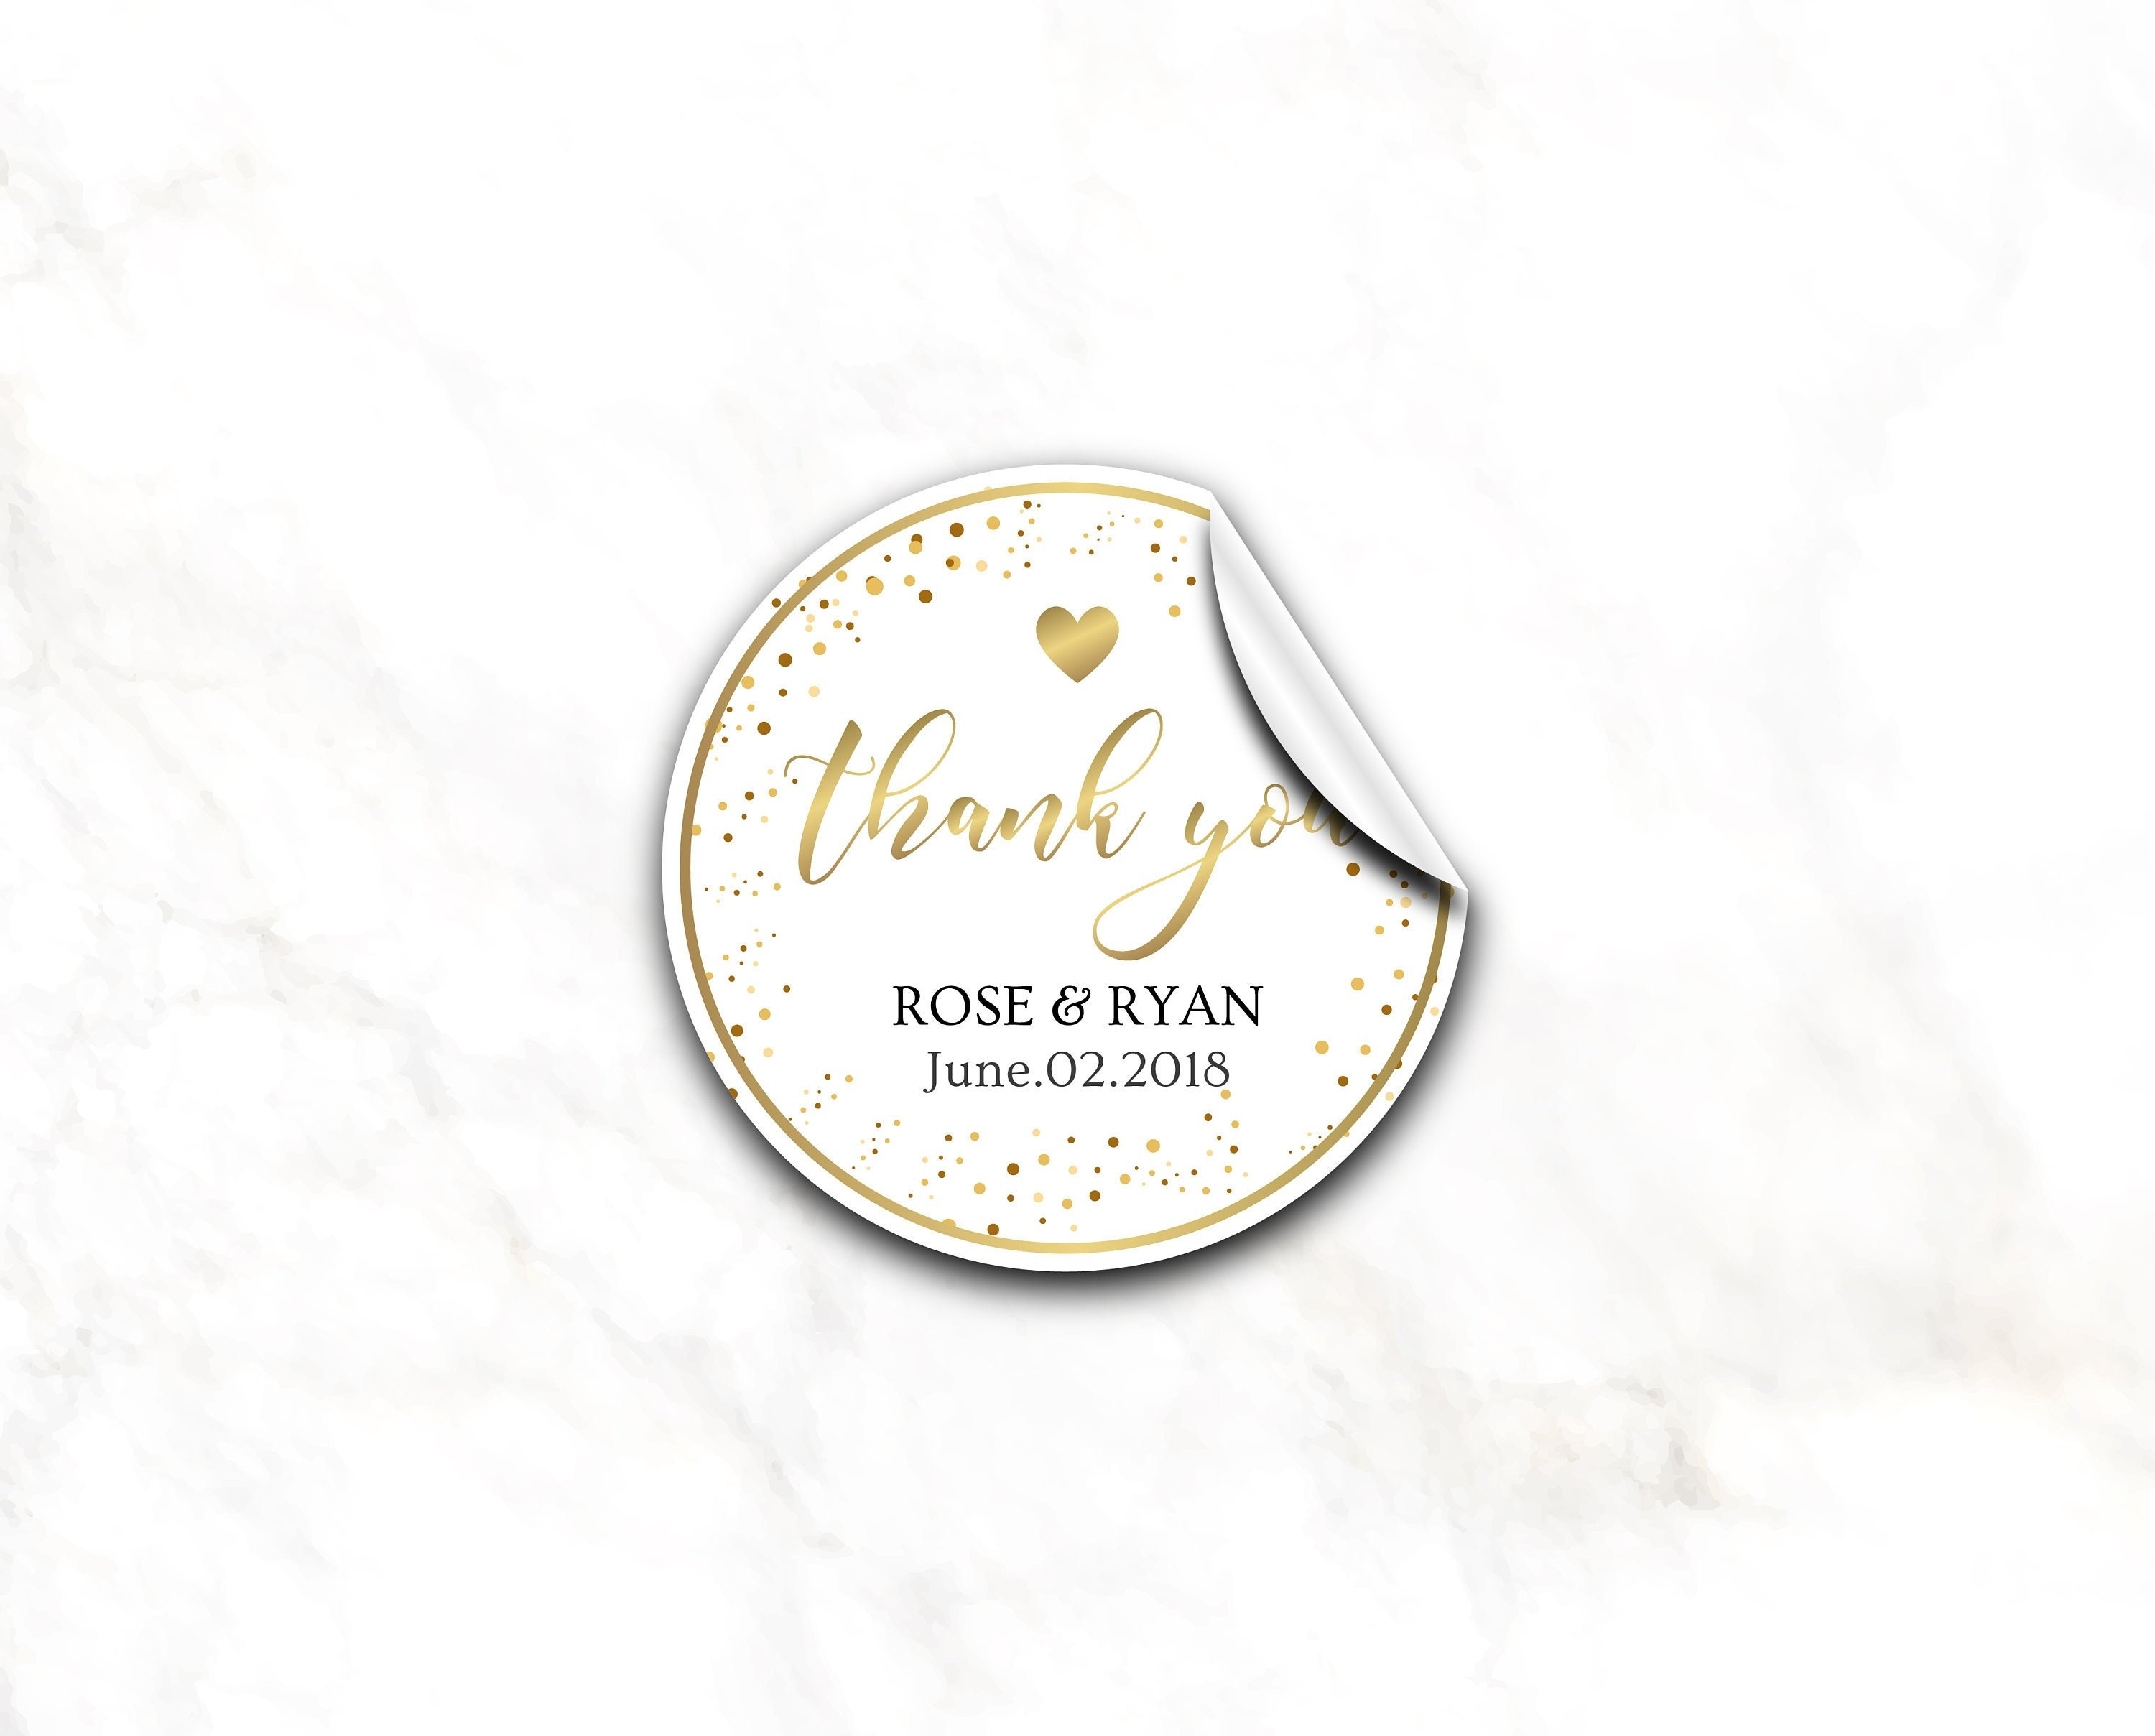 Personalized wedding favor stickers gold glitter stickers favor sticker bridal shower favor favor labels thank you for joining us 7